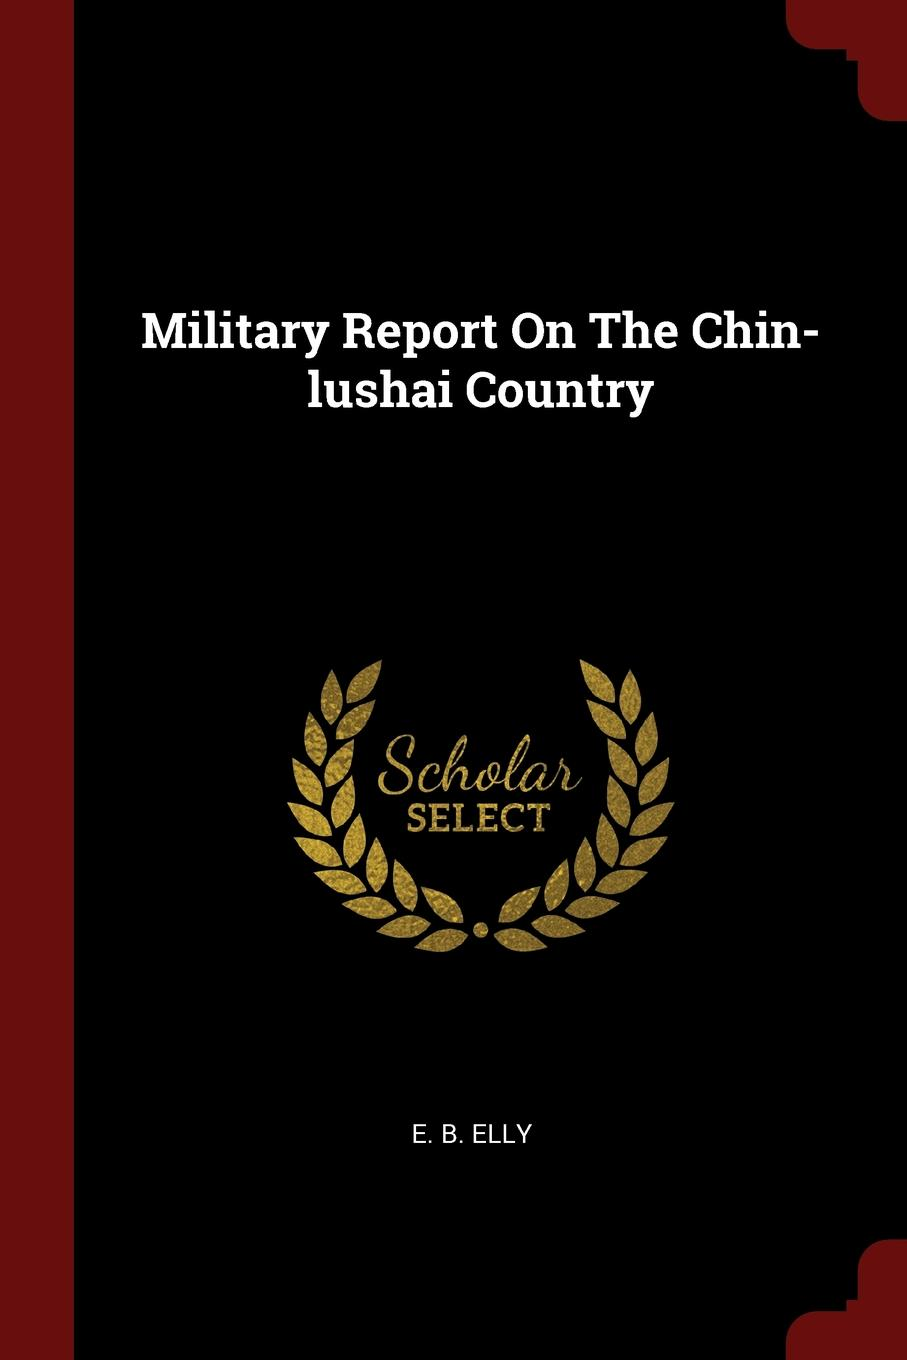 E. B. Elly Military Report On The Chin-lushai Country